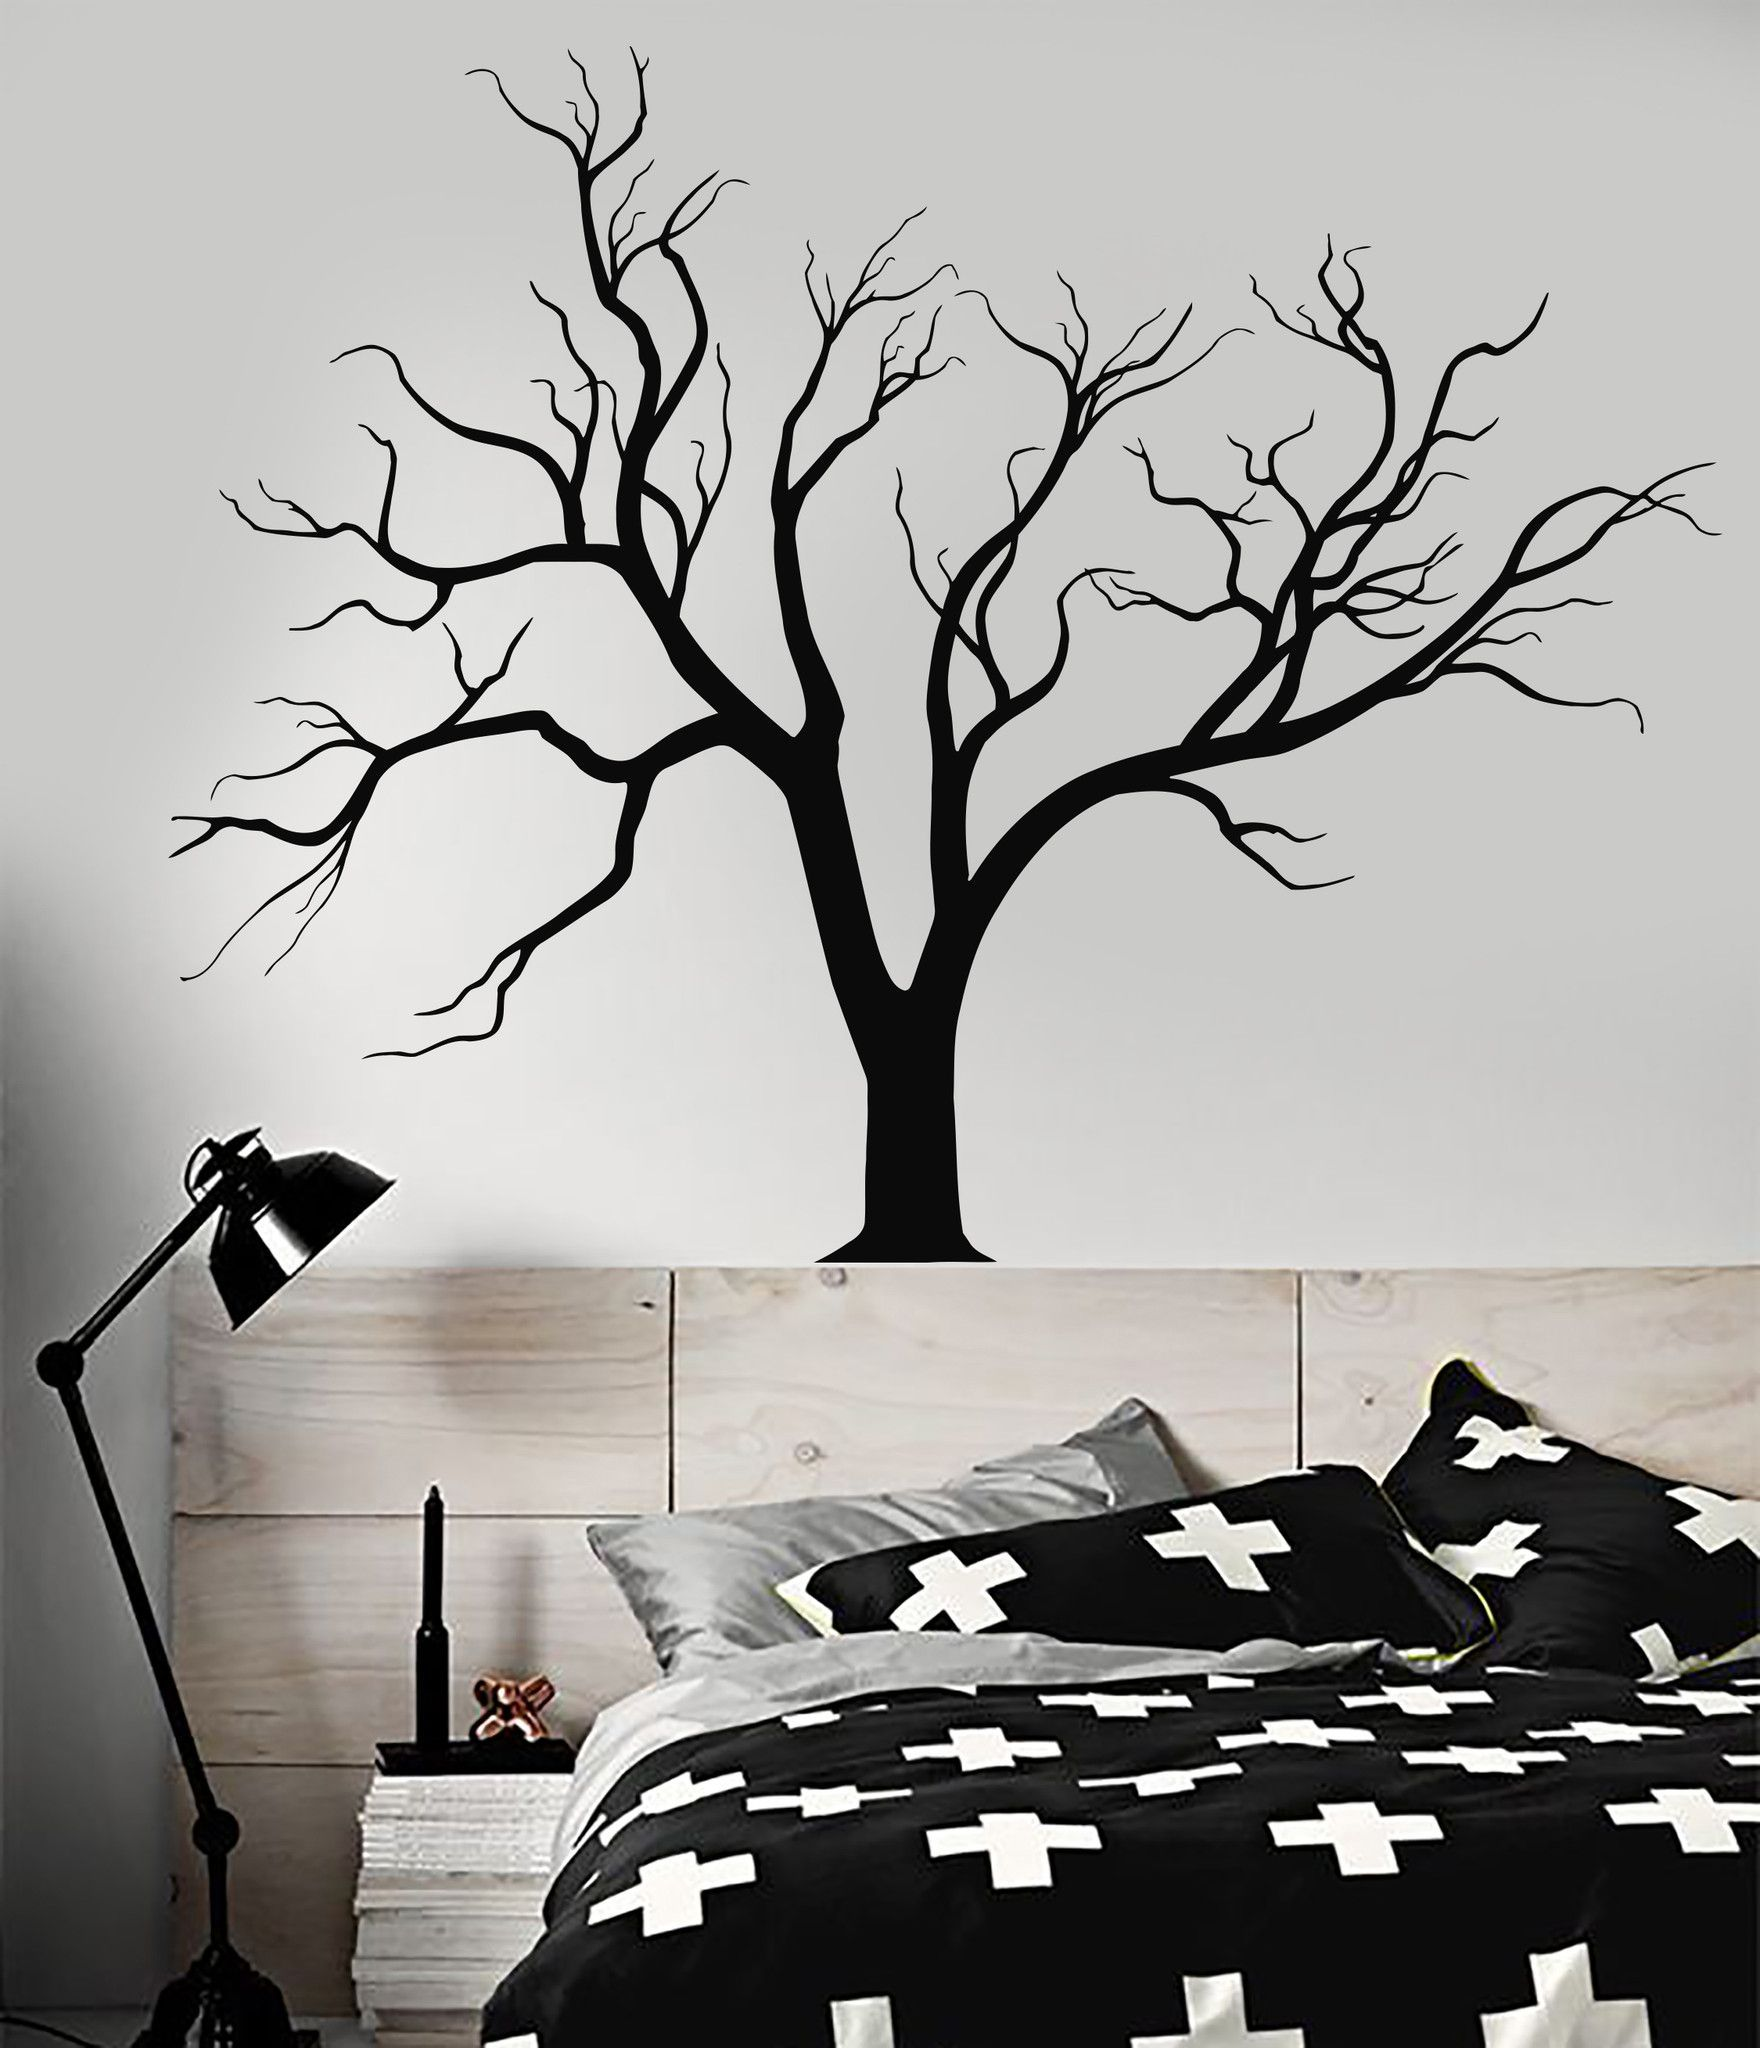 Vinyl Wall Decal Gothic Nature Tree Branches Home Design Stickers - Where to get vinyl stickers made